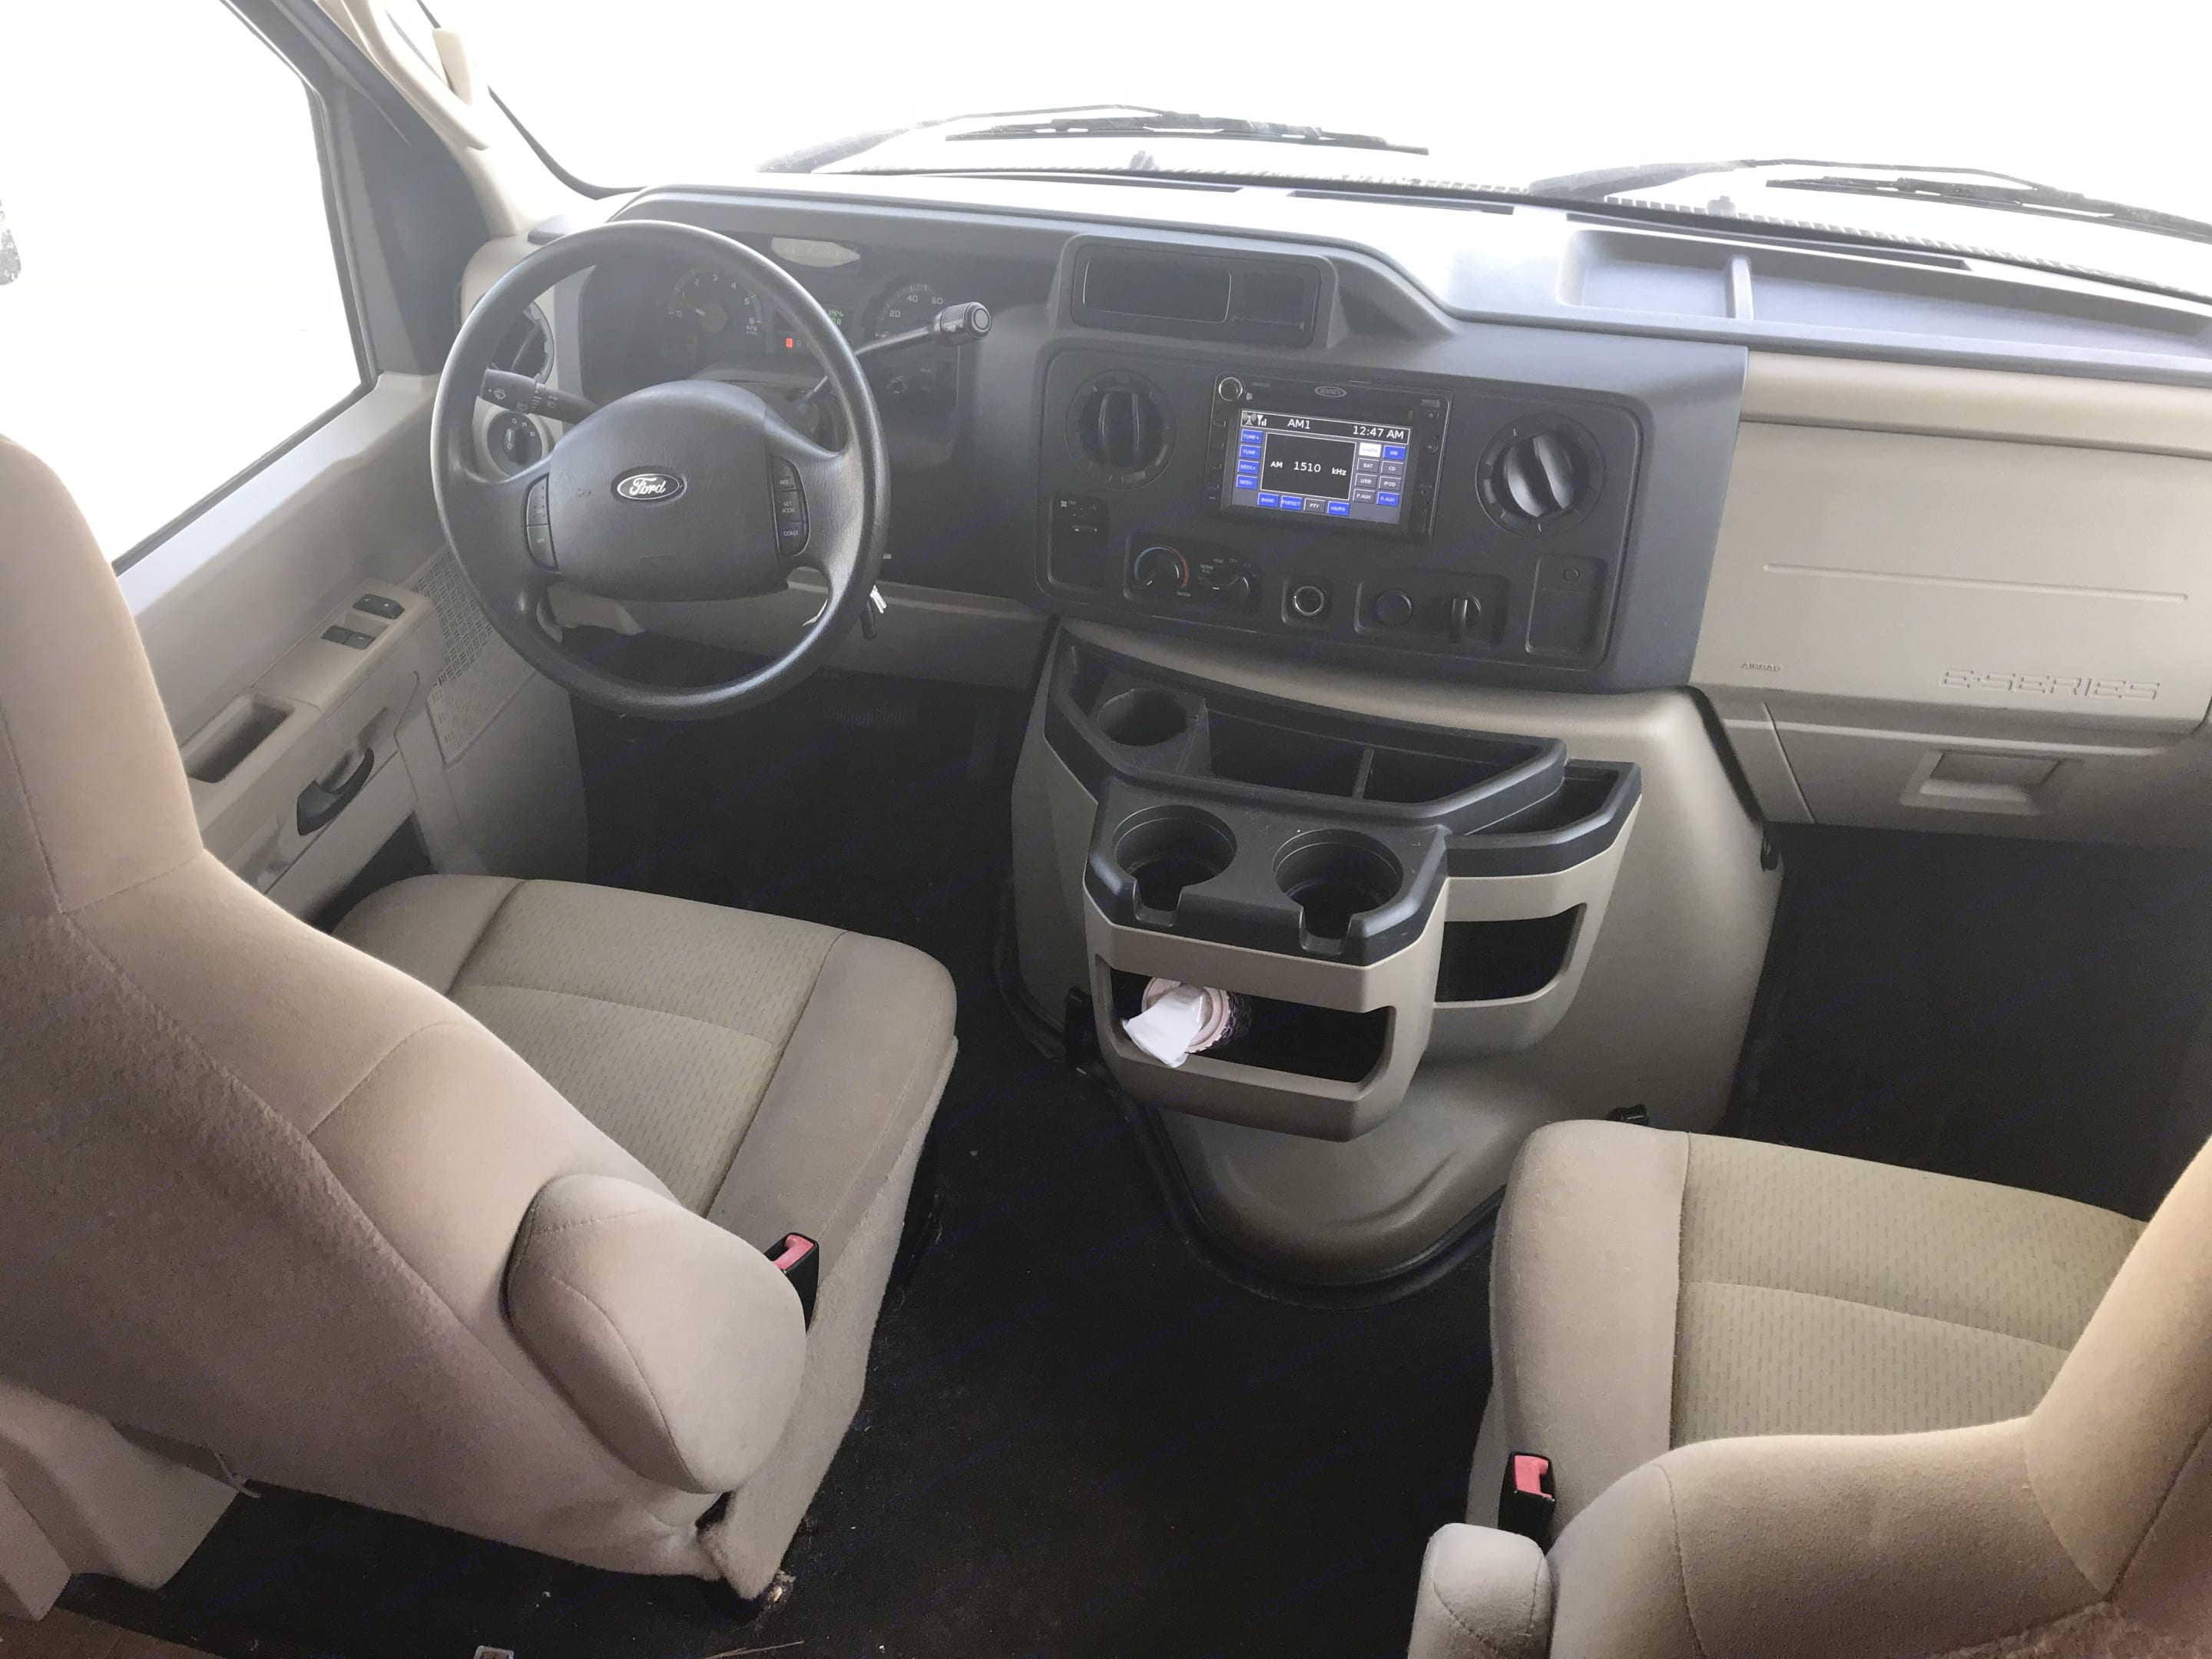 Comfortable and easy to drive. Back up camera and all the upgrades.. Coachmen Freelander 2012